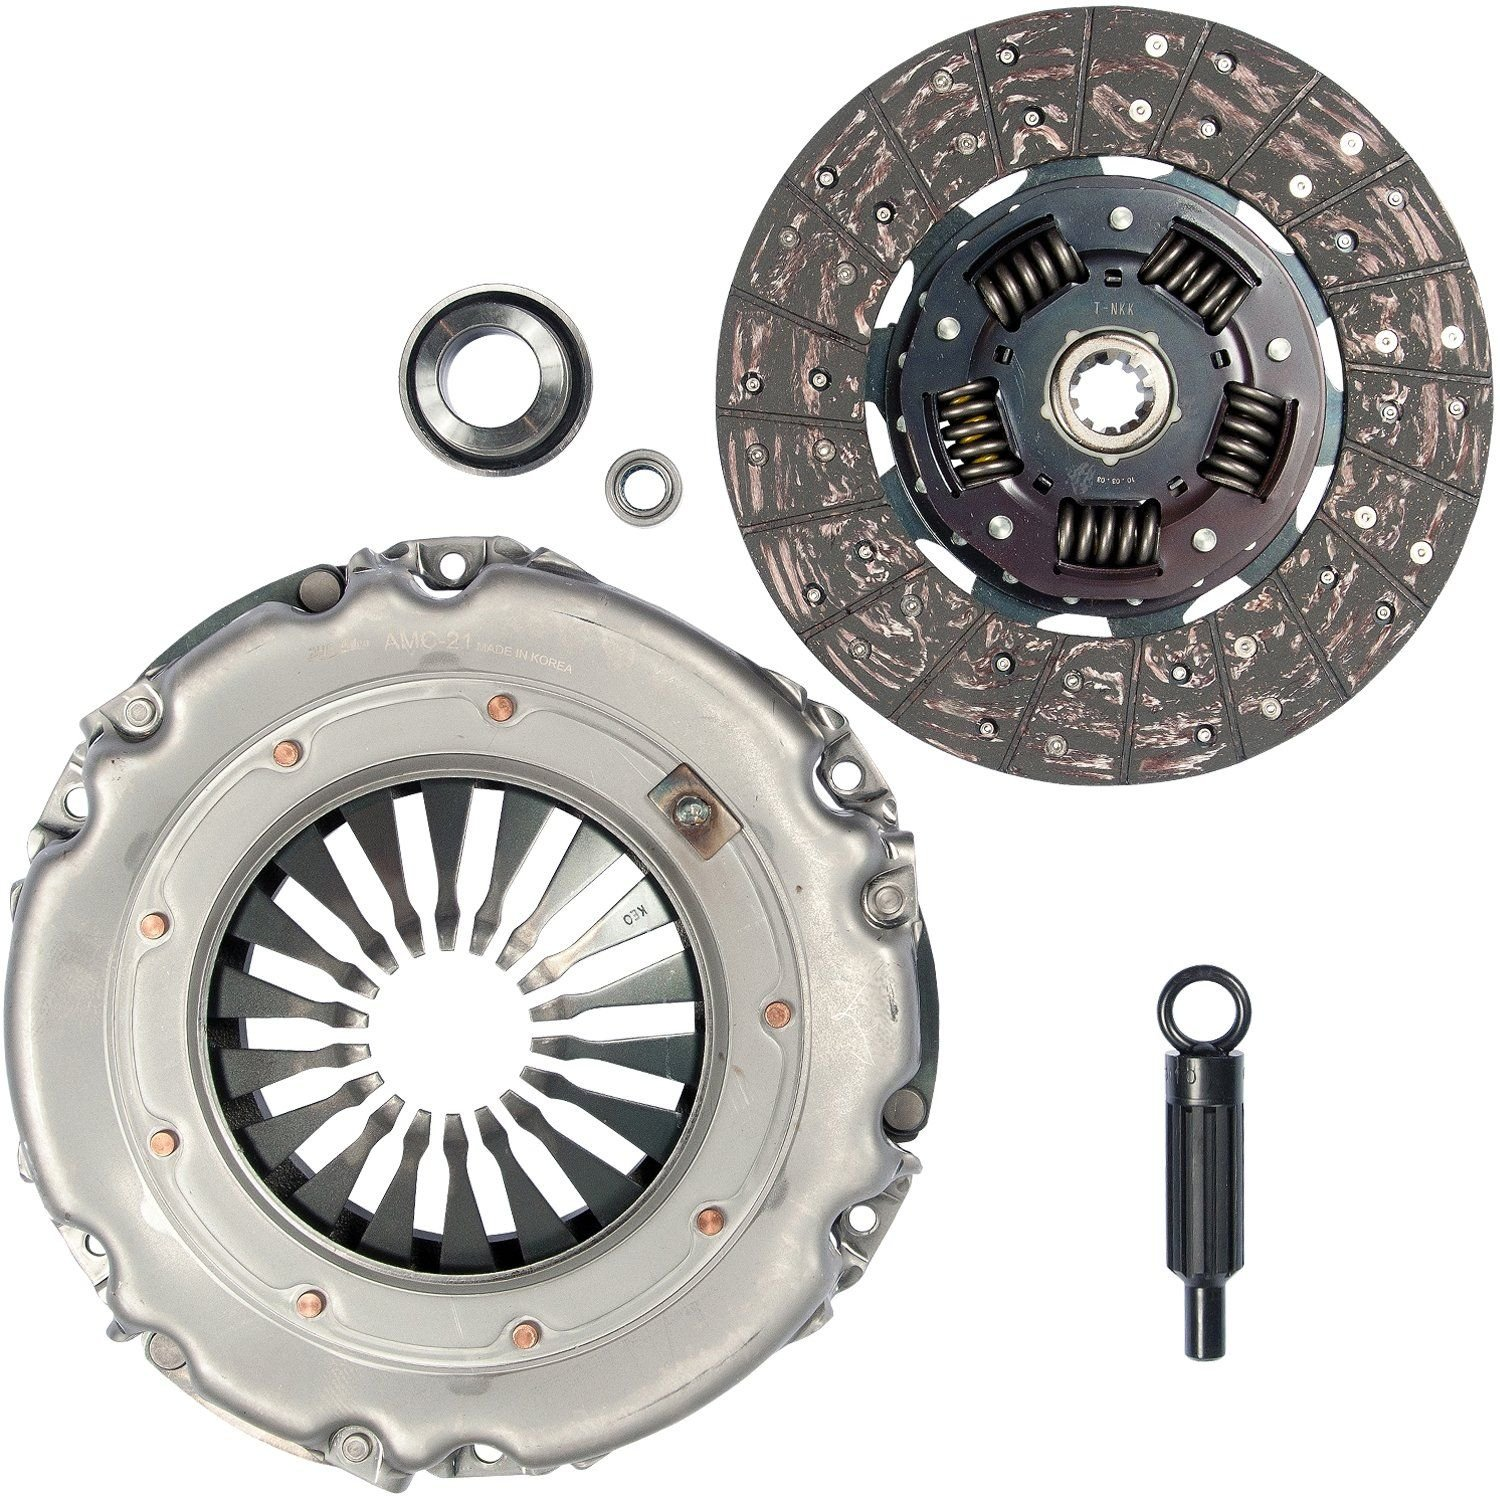 Chevrolet s10 clutch kit replacement exedy luk rhino pac sachs 1992 chevrolet s10 clutch kit 6 cyl 43l rhino pac 04 121 created from row number 4814 getrag flywheel spec flatoe replacement publicscrutiny Gallery